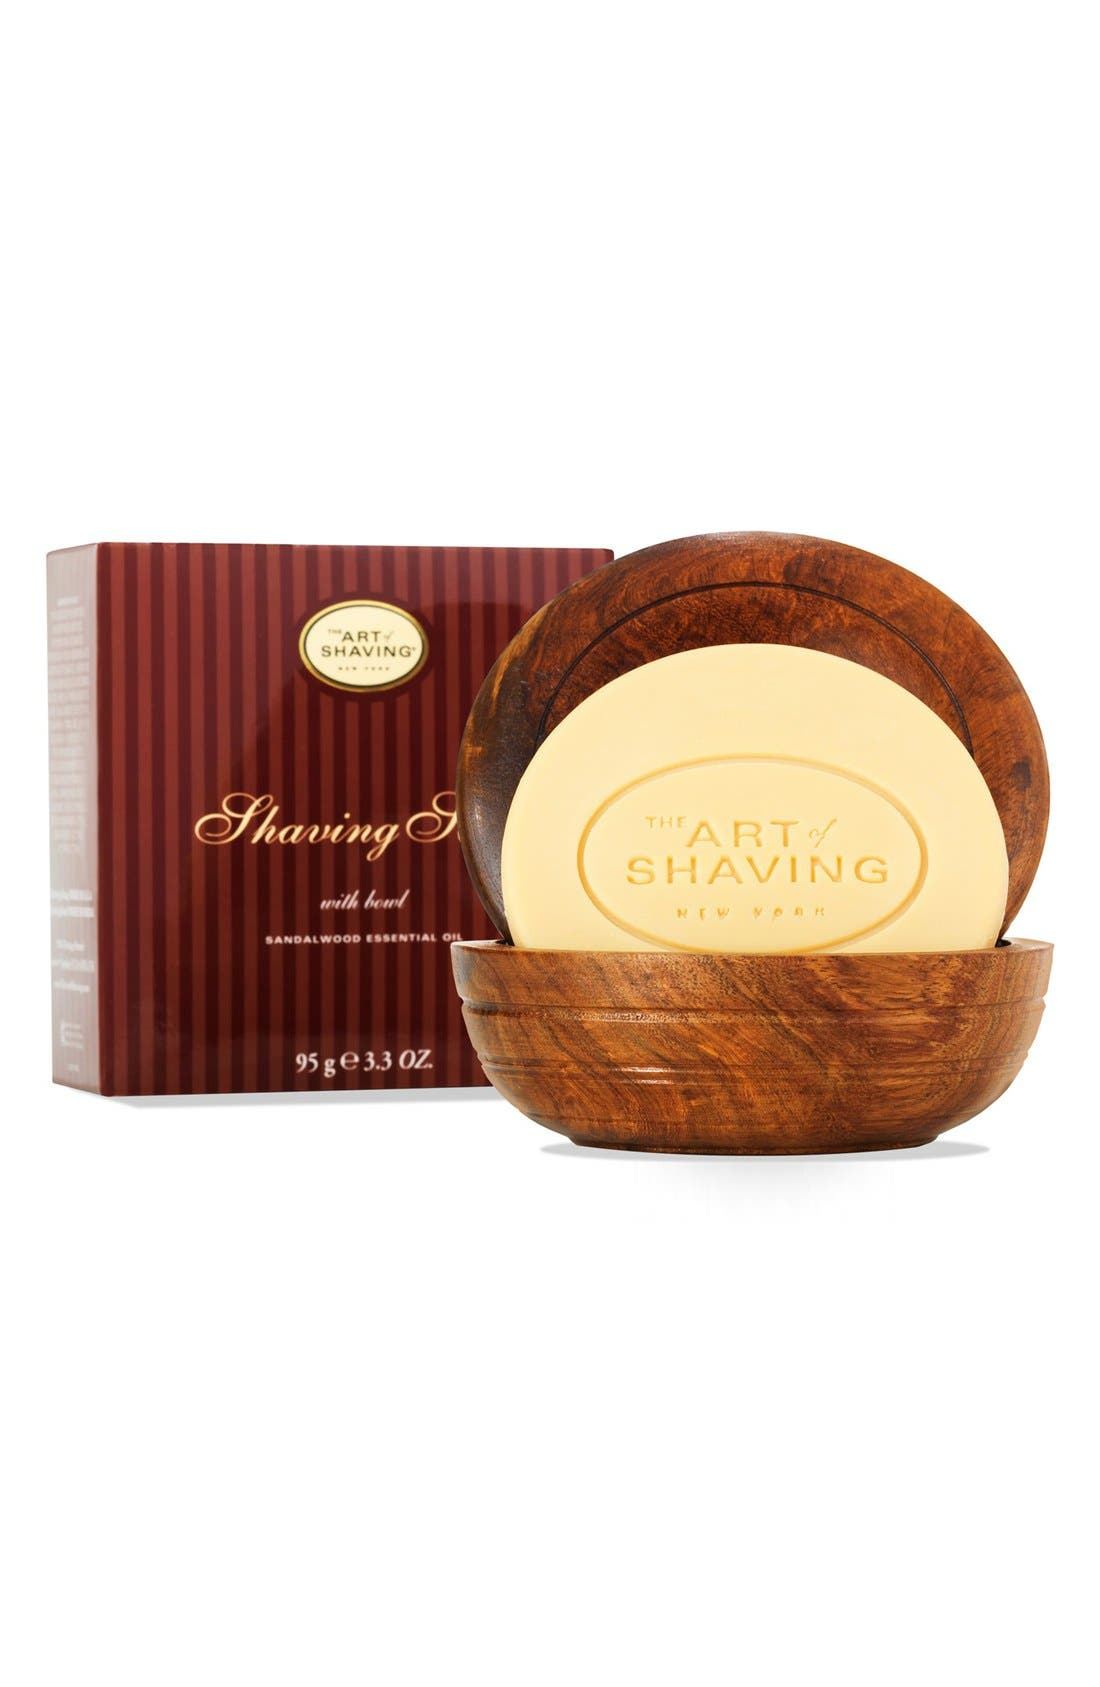 The Art of Shaving® Sandalwood Shaving Soap with Bowl